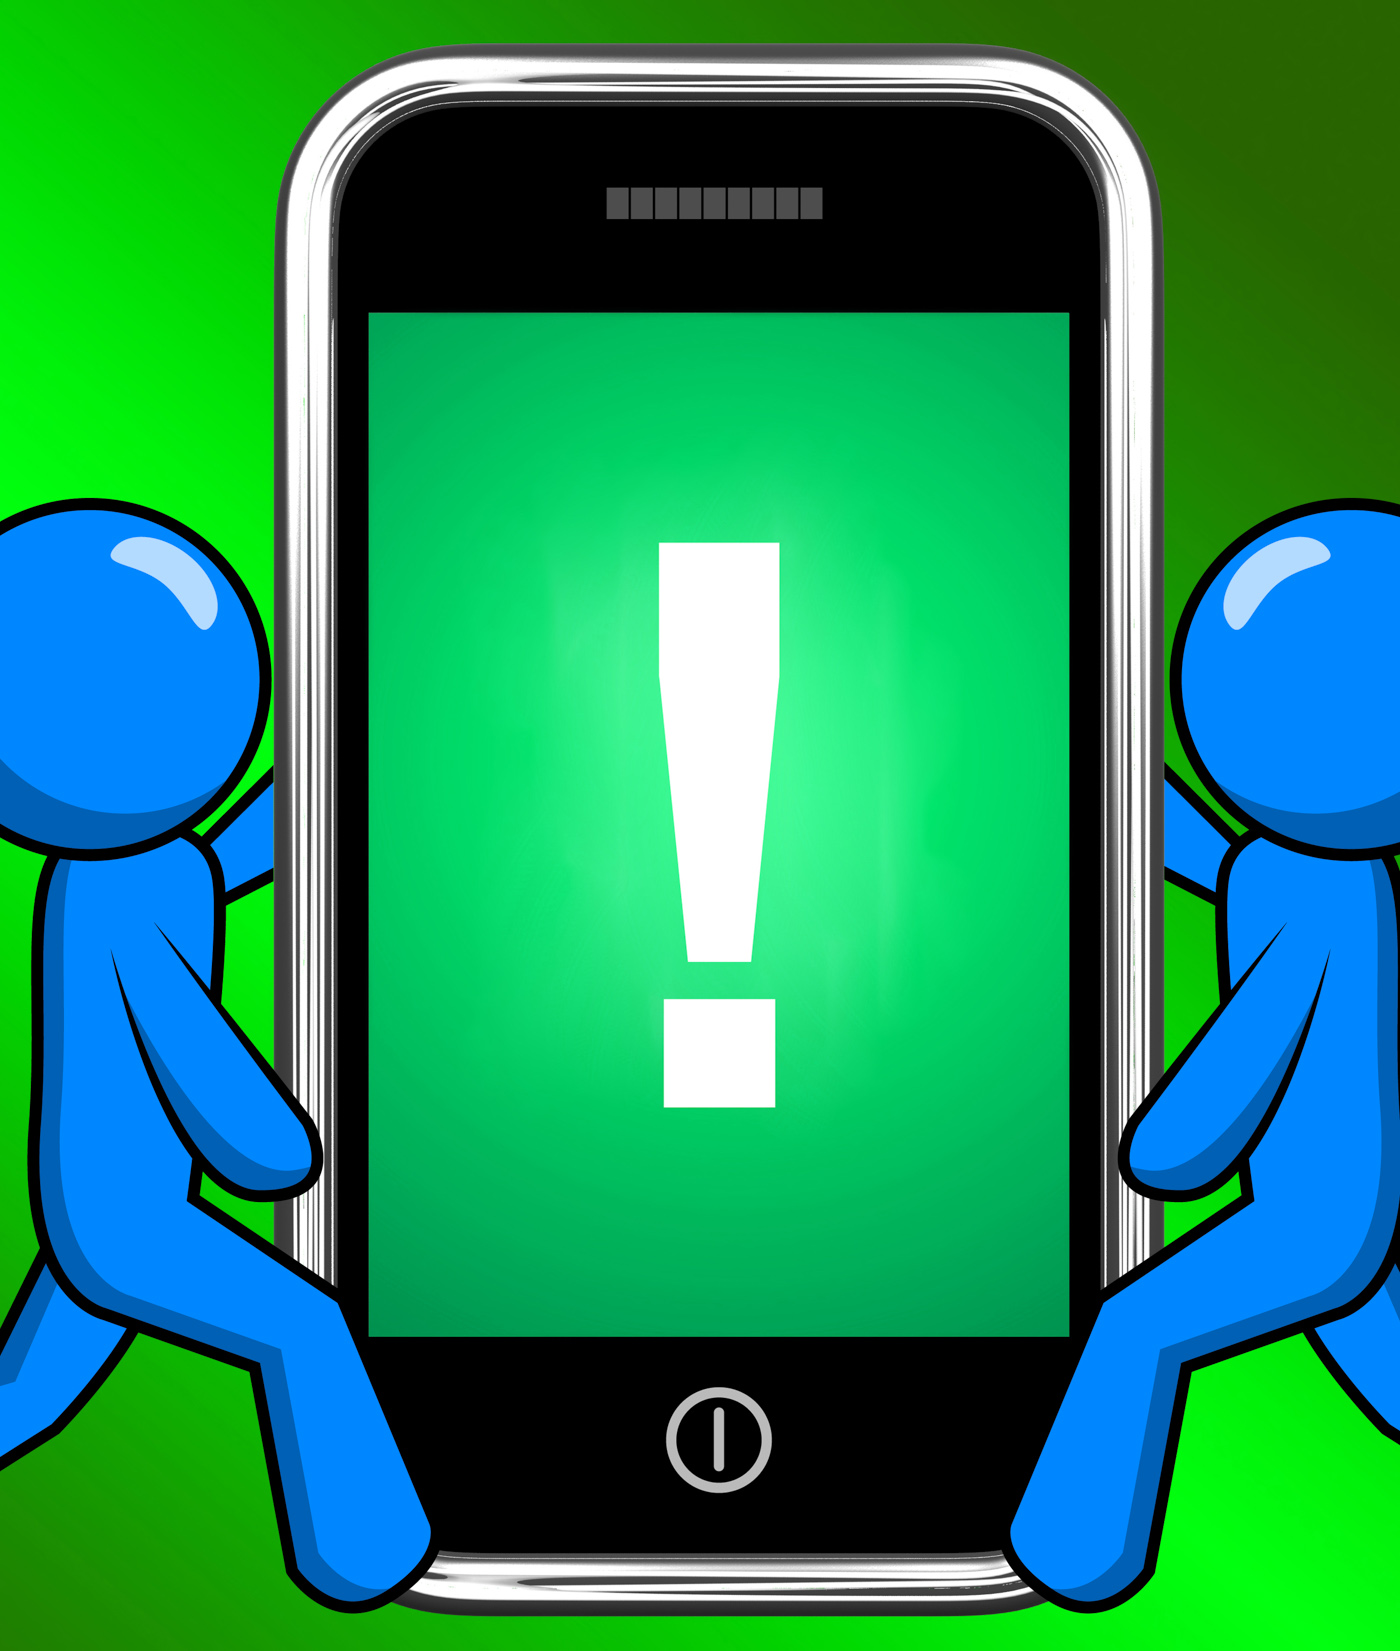 Exclamation mark on phone displays attention warning photo